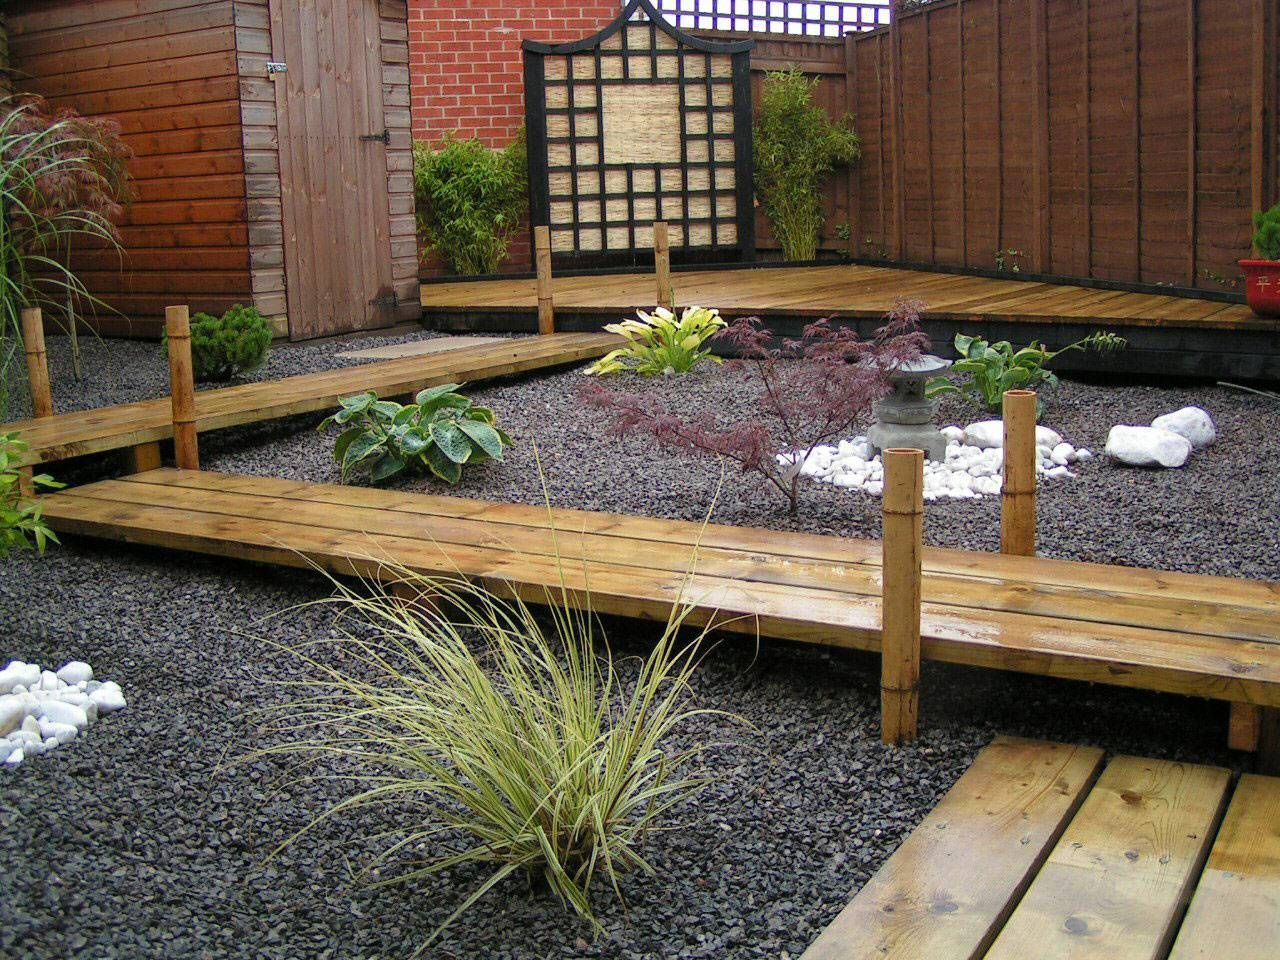 Delicieux Japanese Garden Design Japanese Garden With Wood Pathway For Backyard  Design Ideas